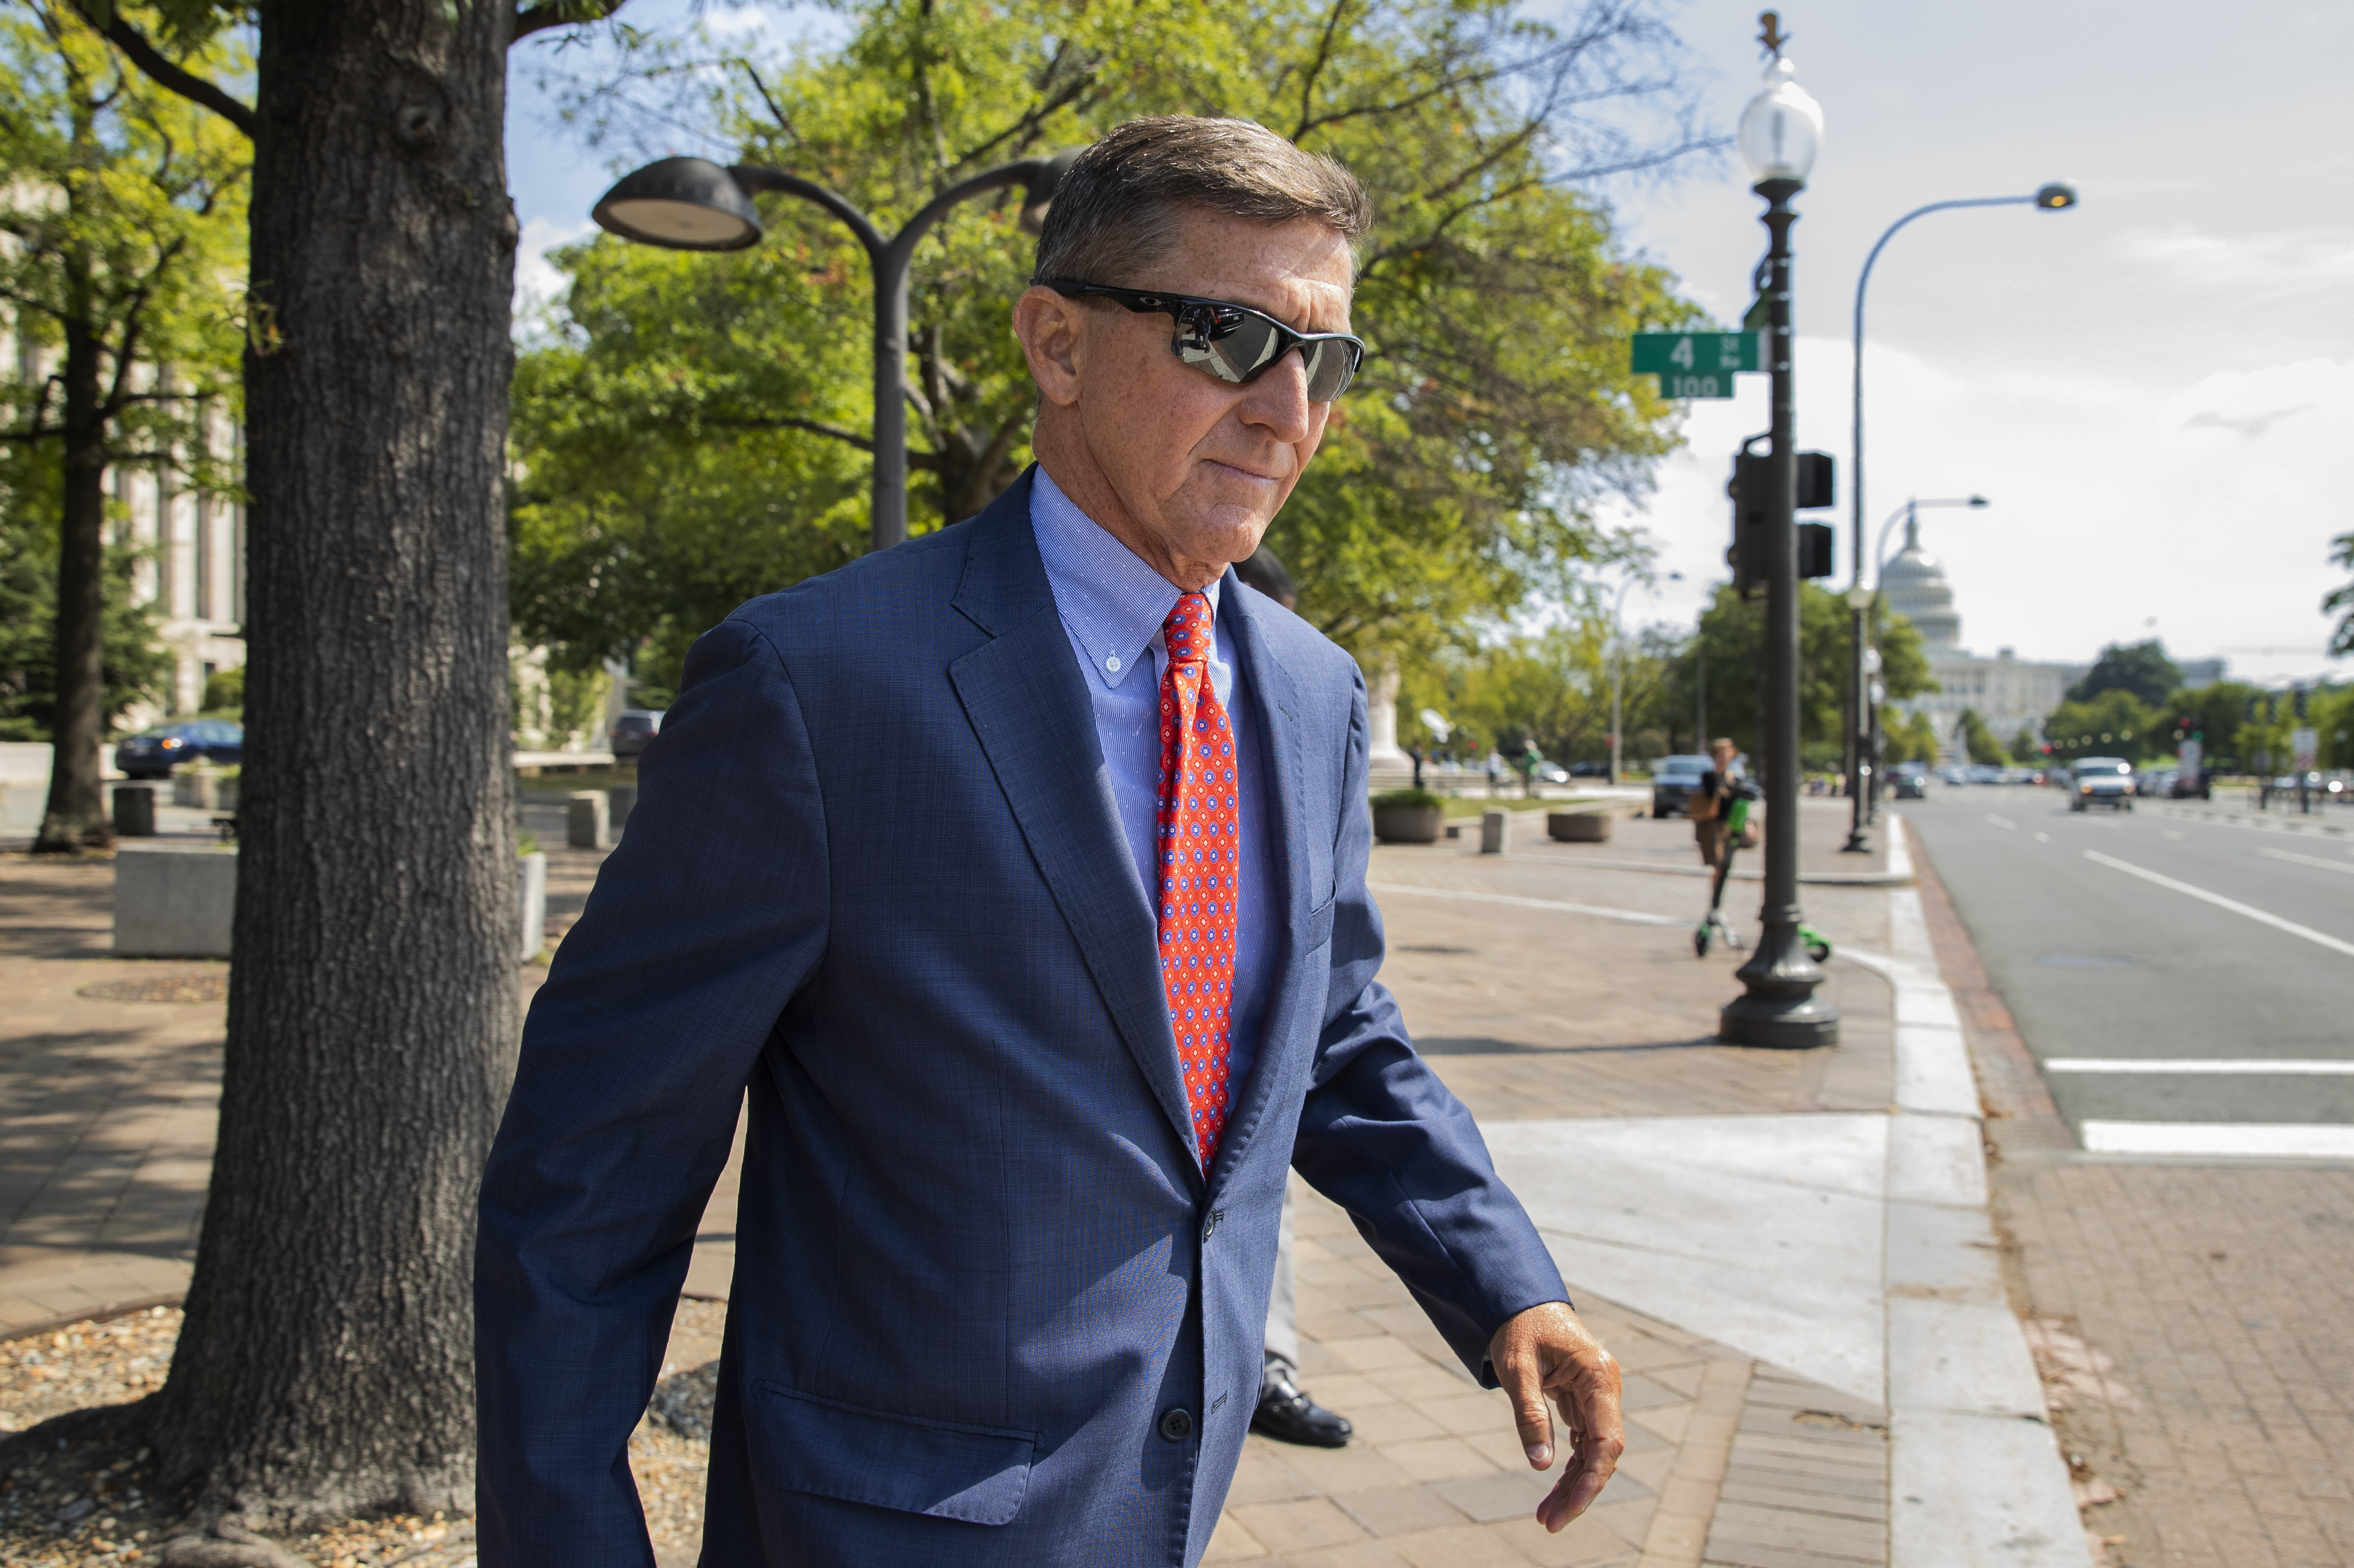 Transcripts released of Flynns calls with Russian diplomat